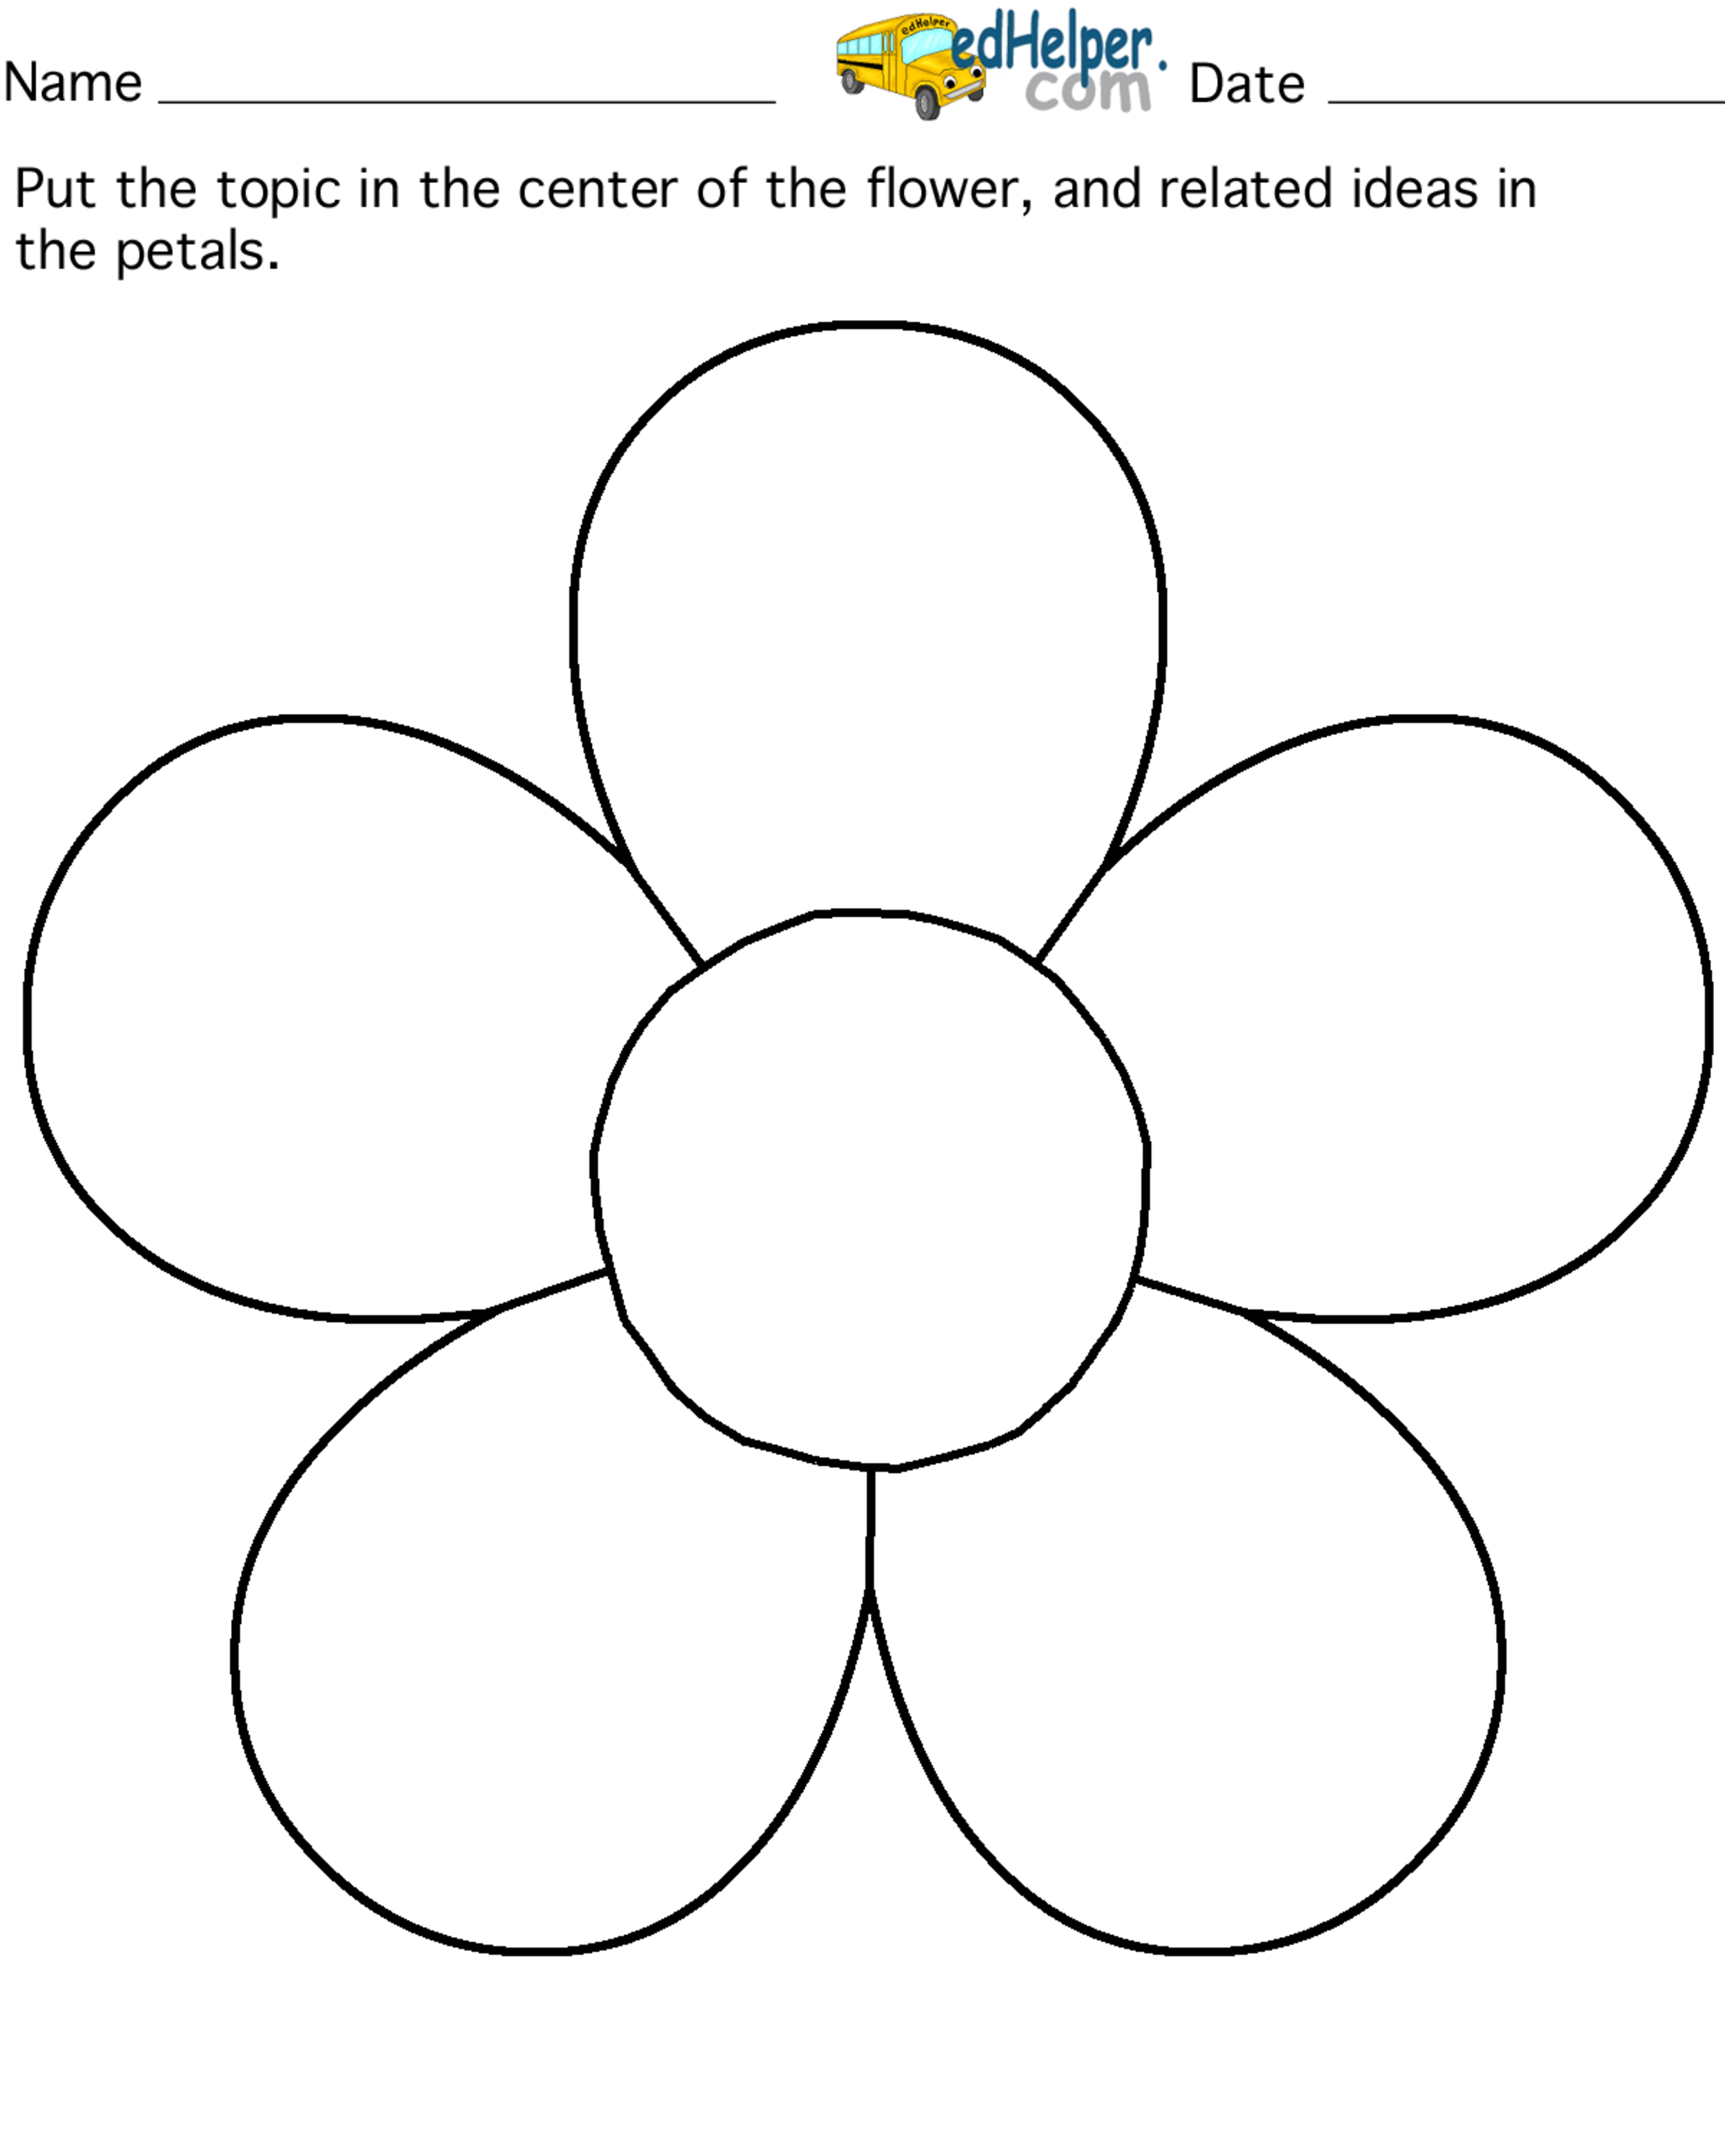 image relating to 5 Petal Flower Template Free Printable identify subject matter flower 5 petals edHelperclipart www2 server by means of